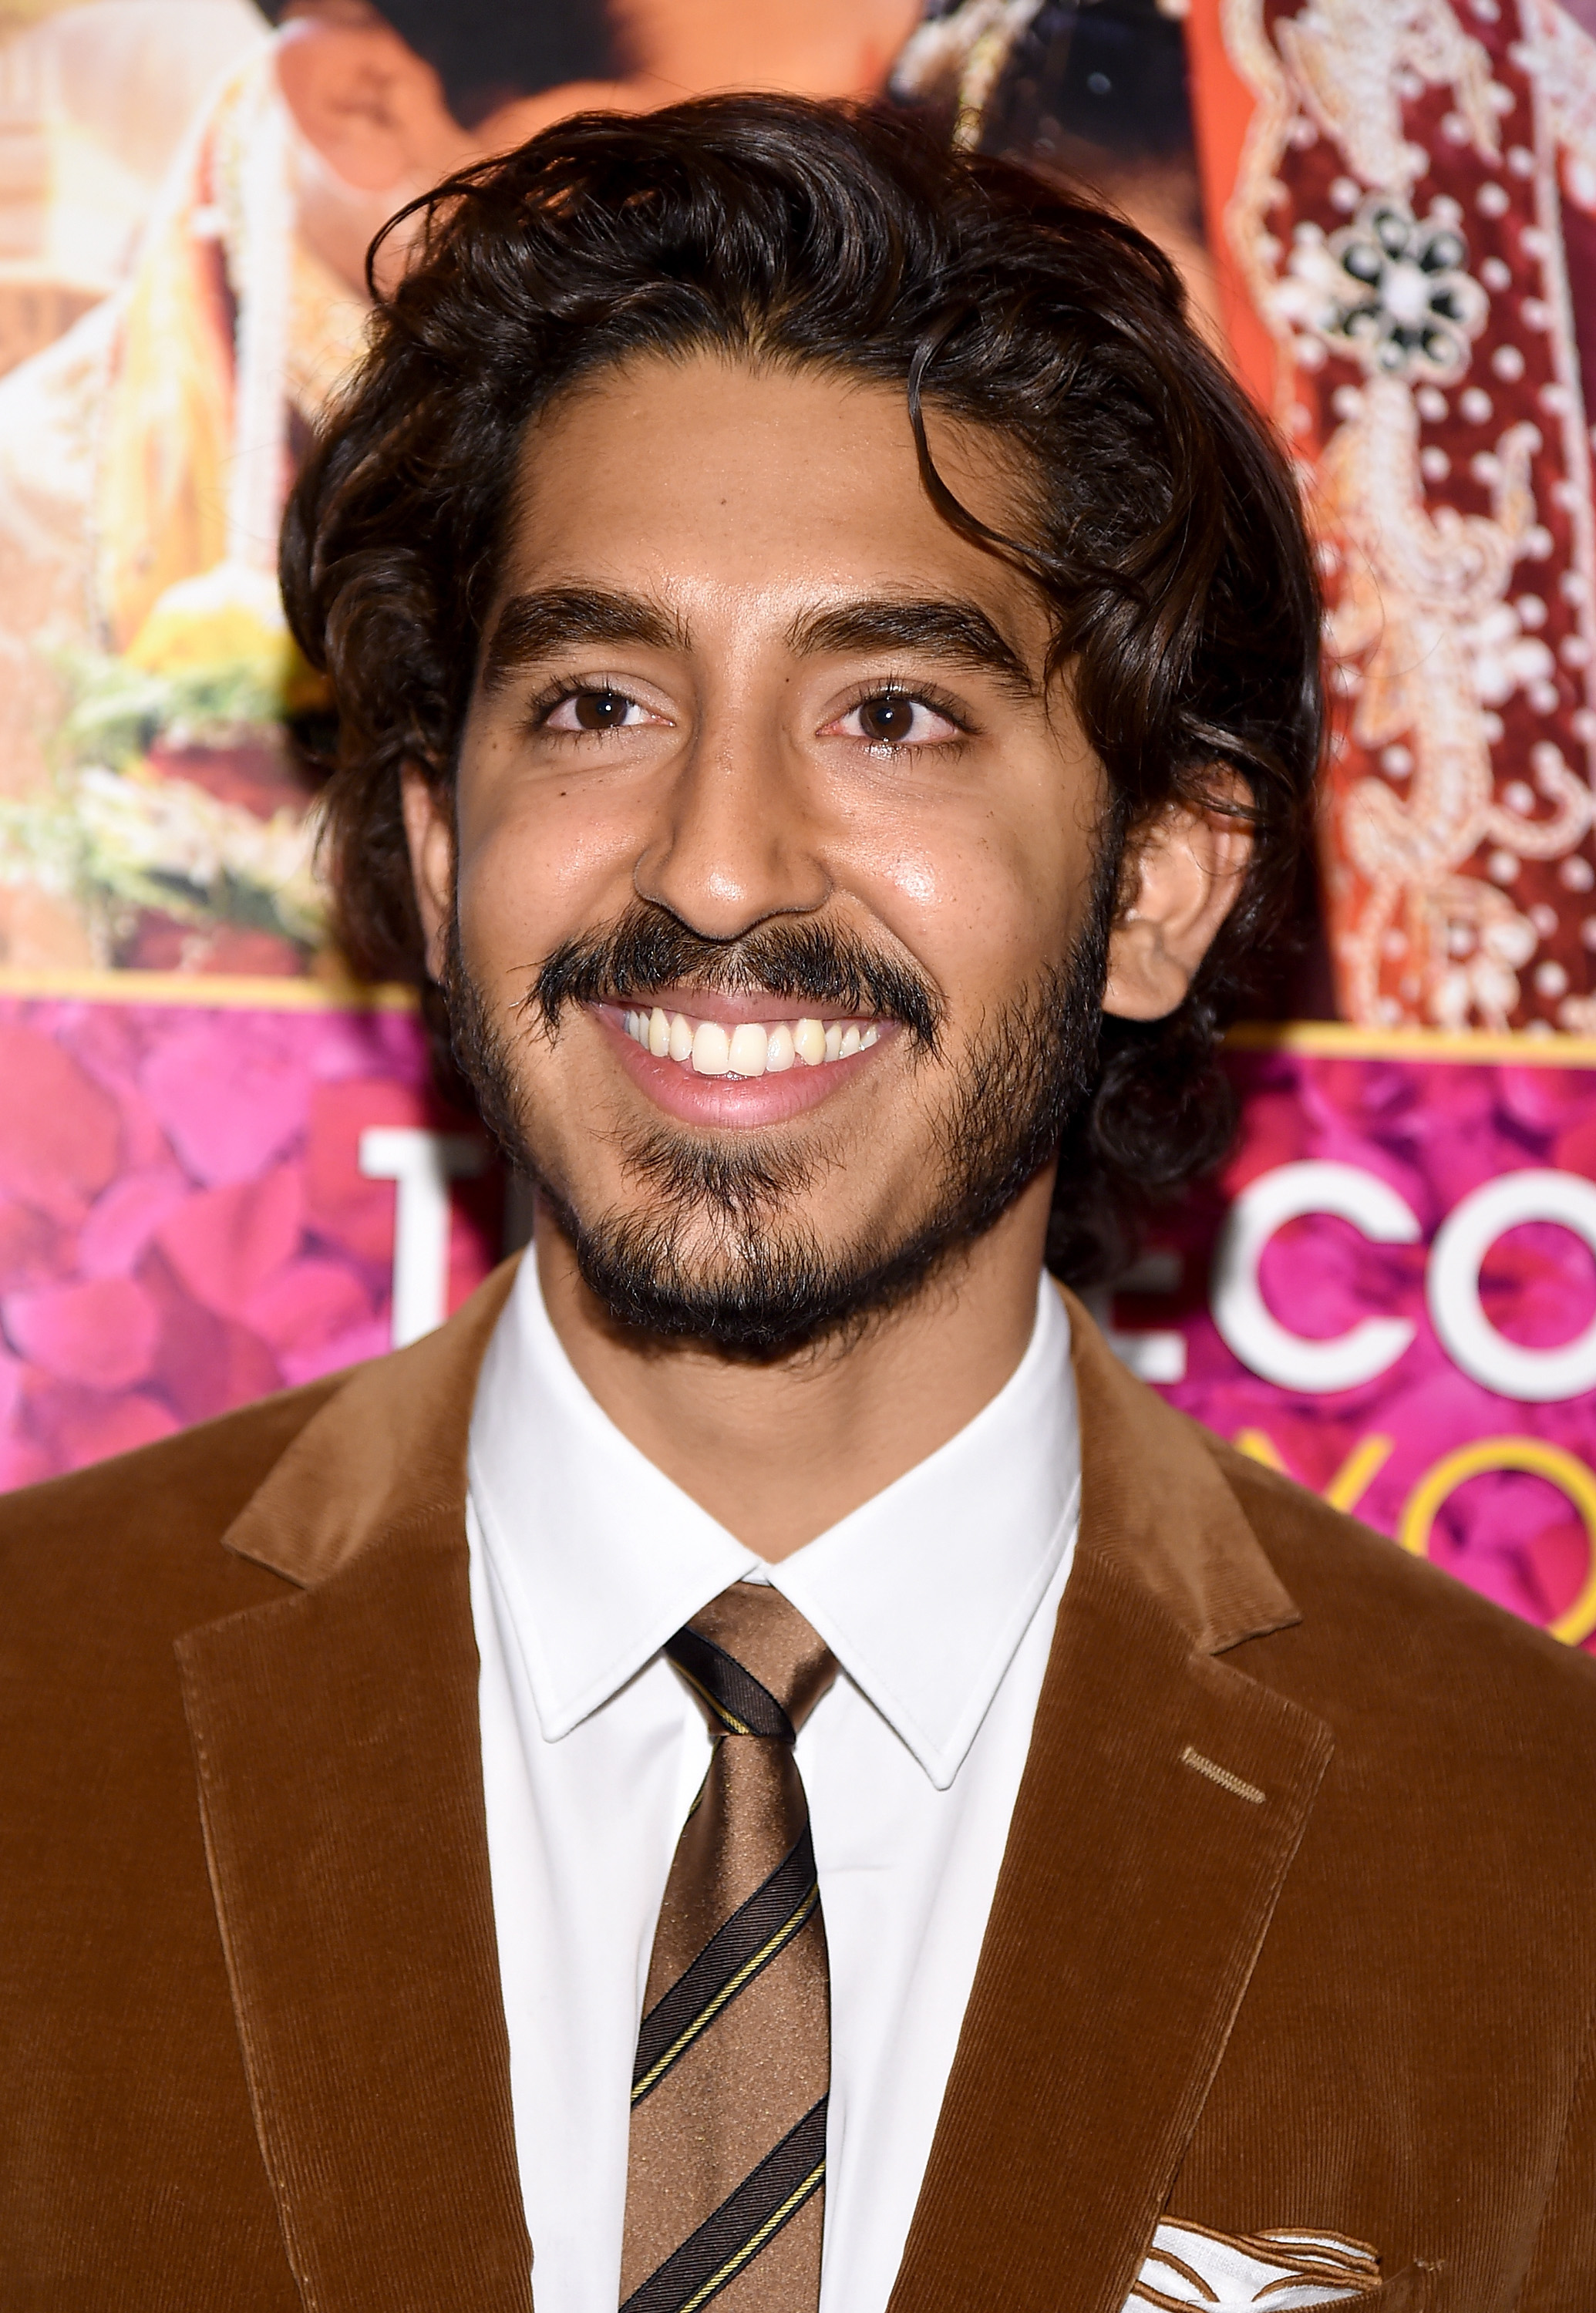 Actor Dev Patel attends  The Second Best Exotic Marigold Hotel  New York Premiere on Mar. 3, 2015 in New York City.